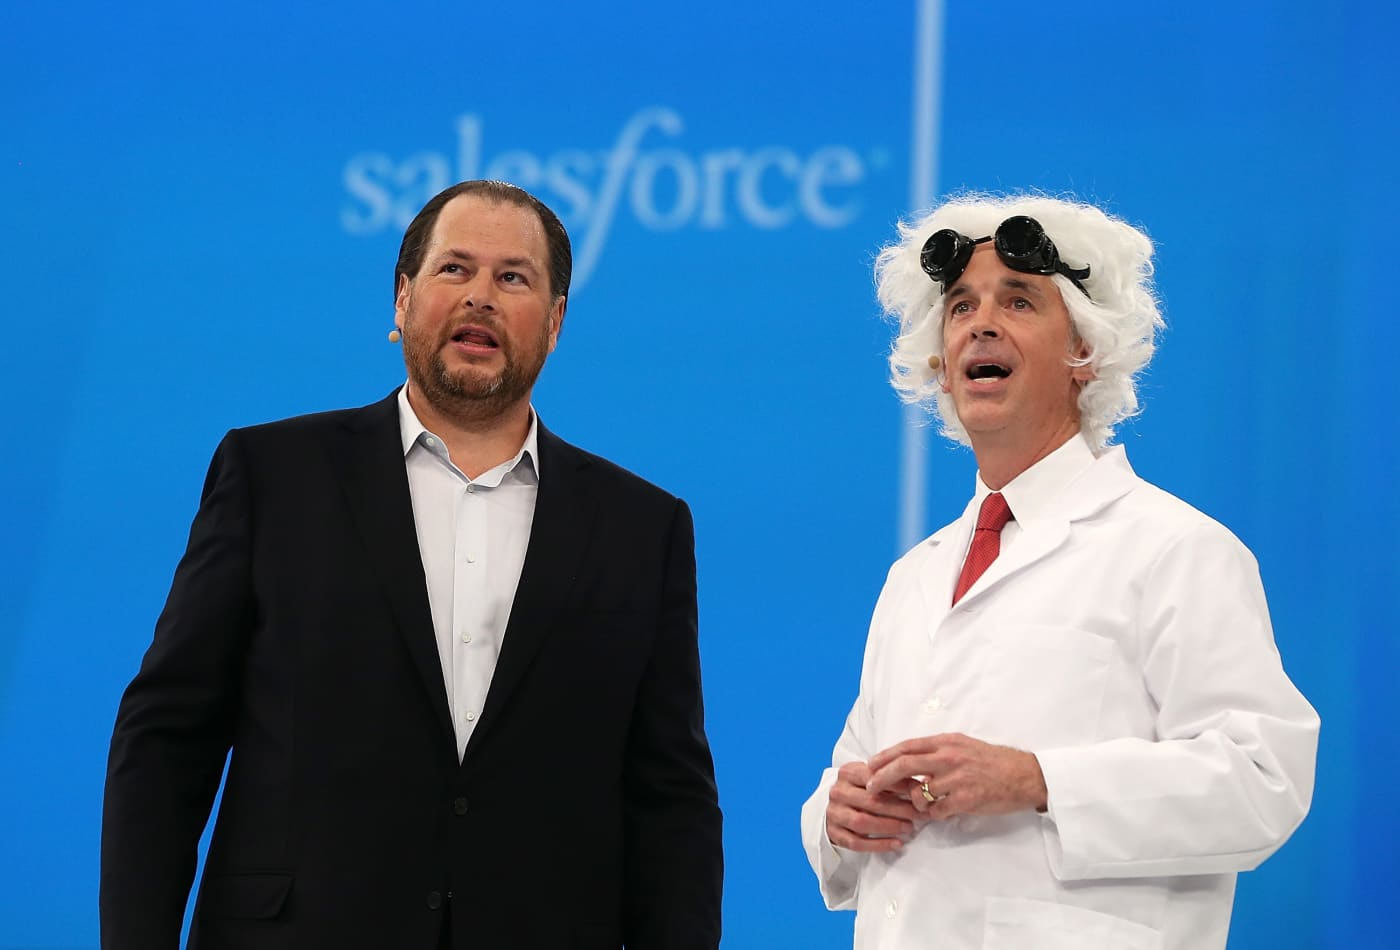 Salesforce says a 'major issue' with its cloud service results in outage for some customers